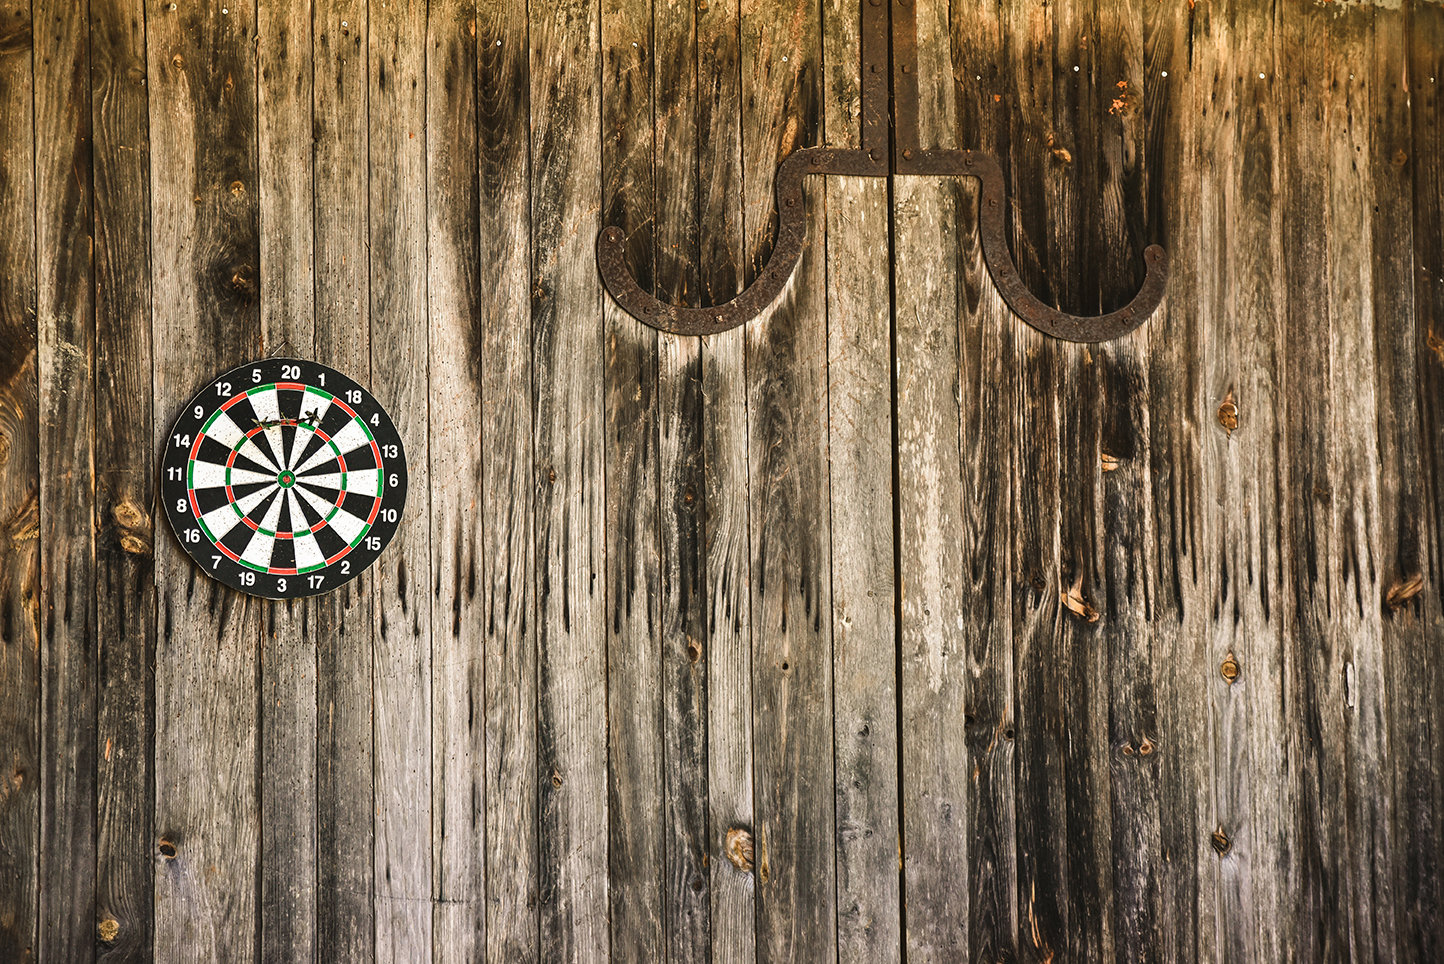 Group holiday accommodation in the Dordogne with a dartboard on an old wooden door in the games area